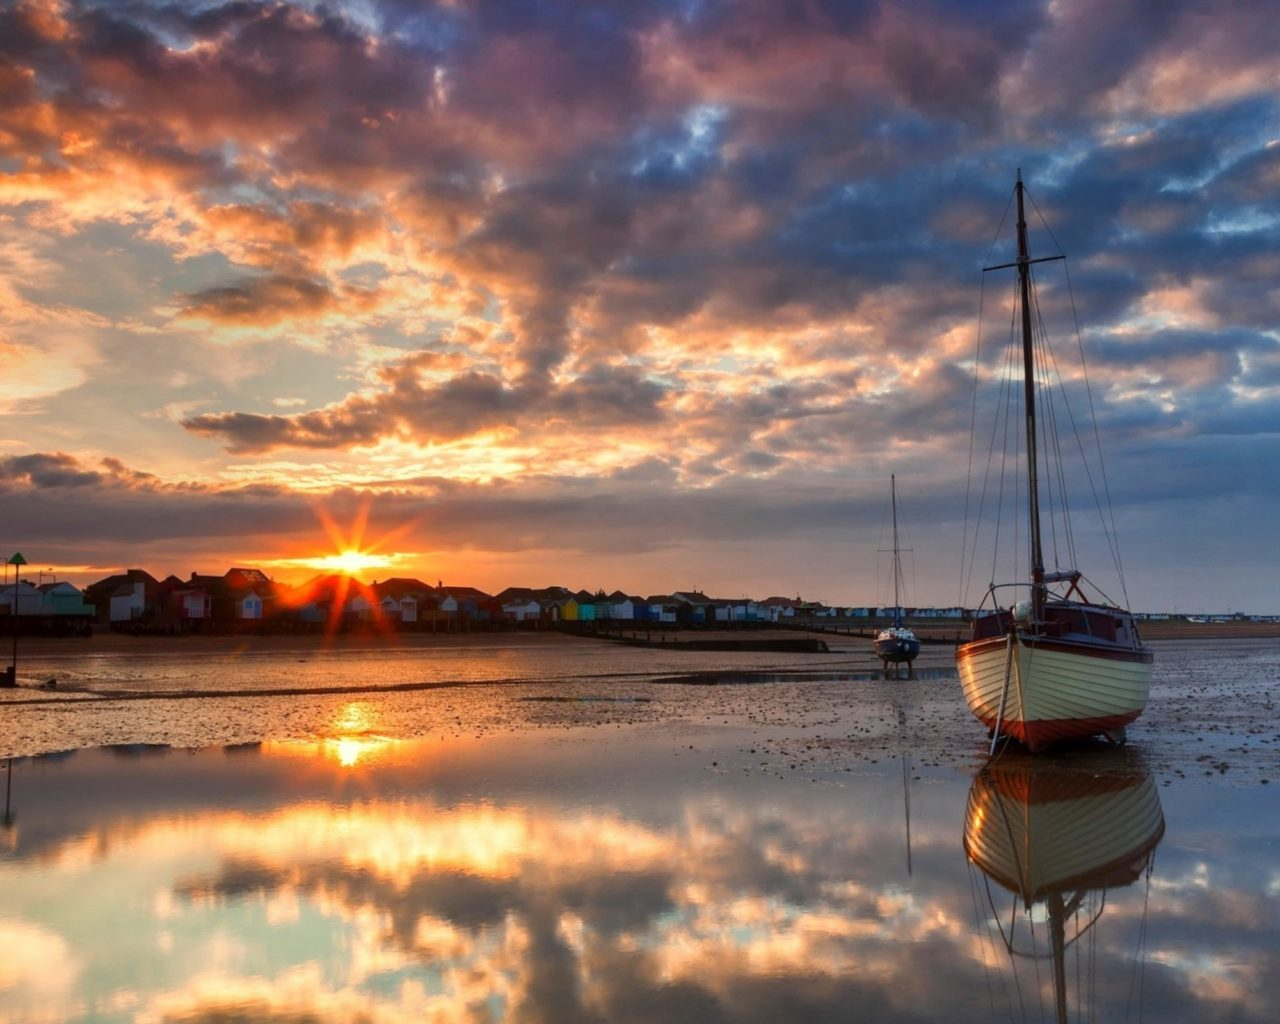 Boat Wallpaper Iphone Lakes Ocean Sea Bay Harbor Water Reflection Sky Clouds